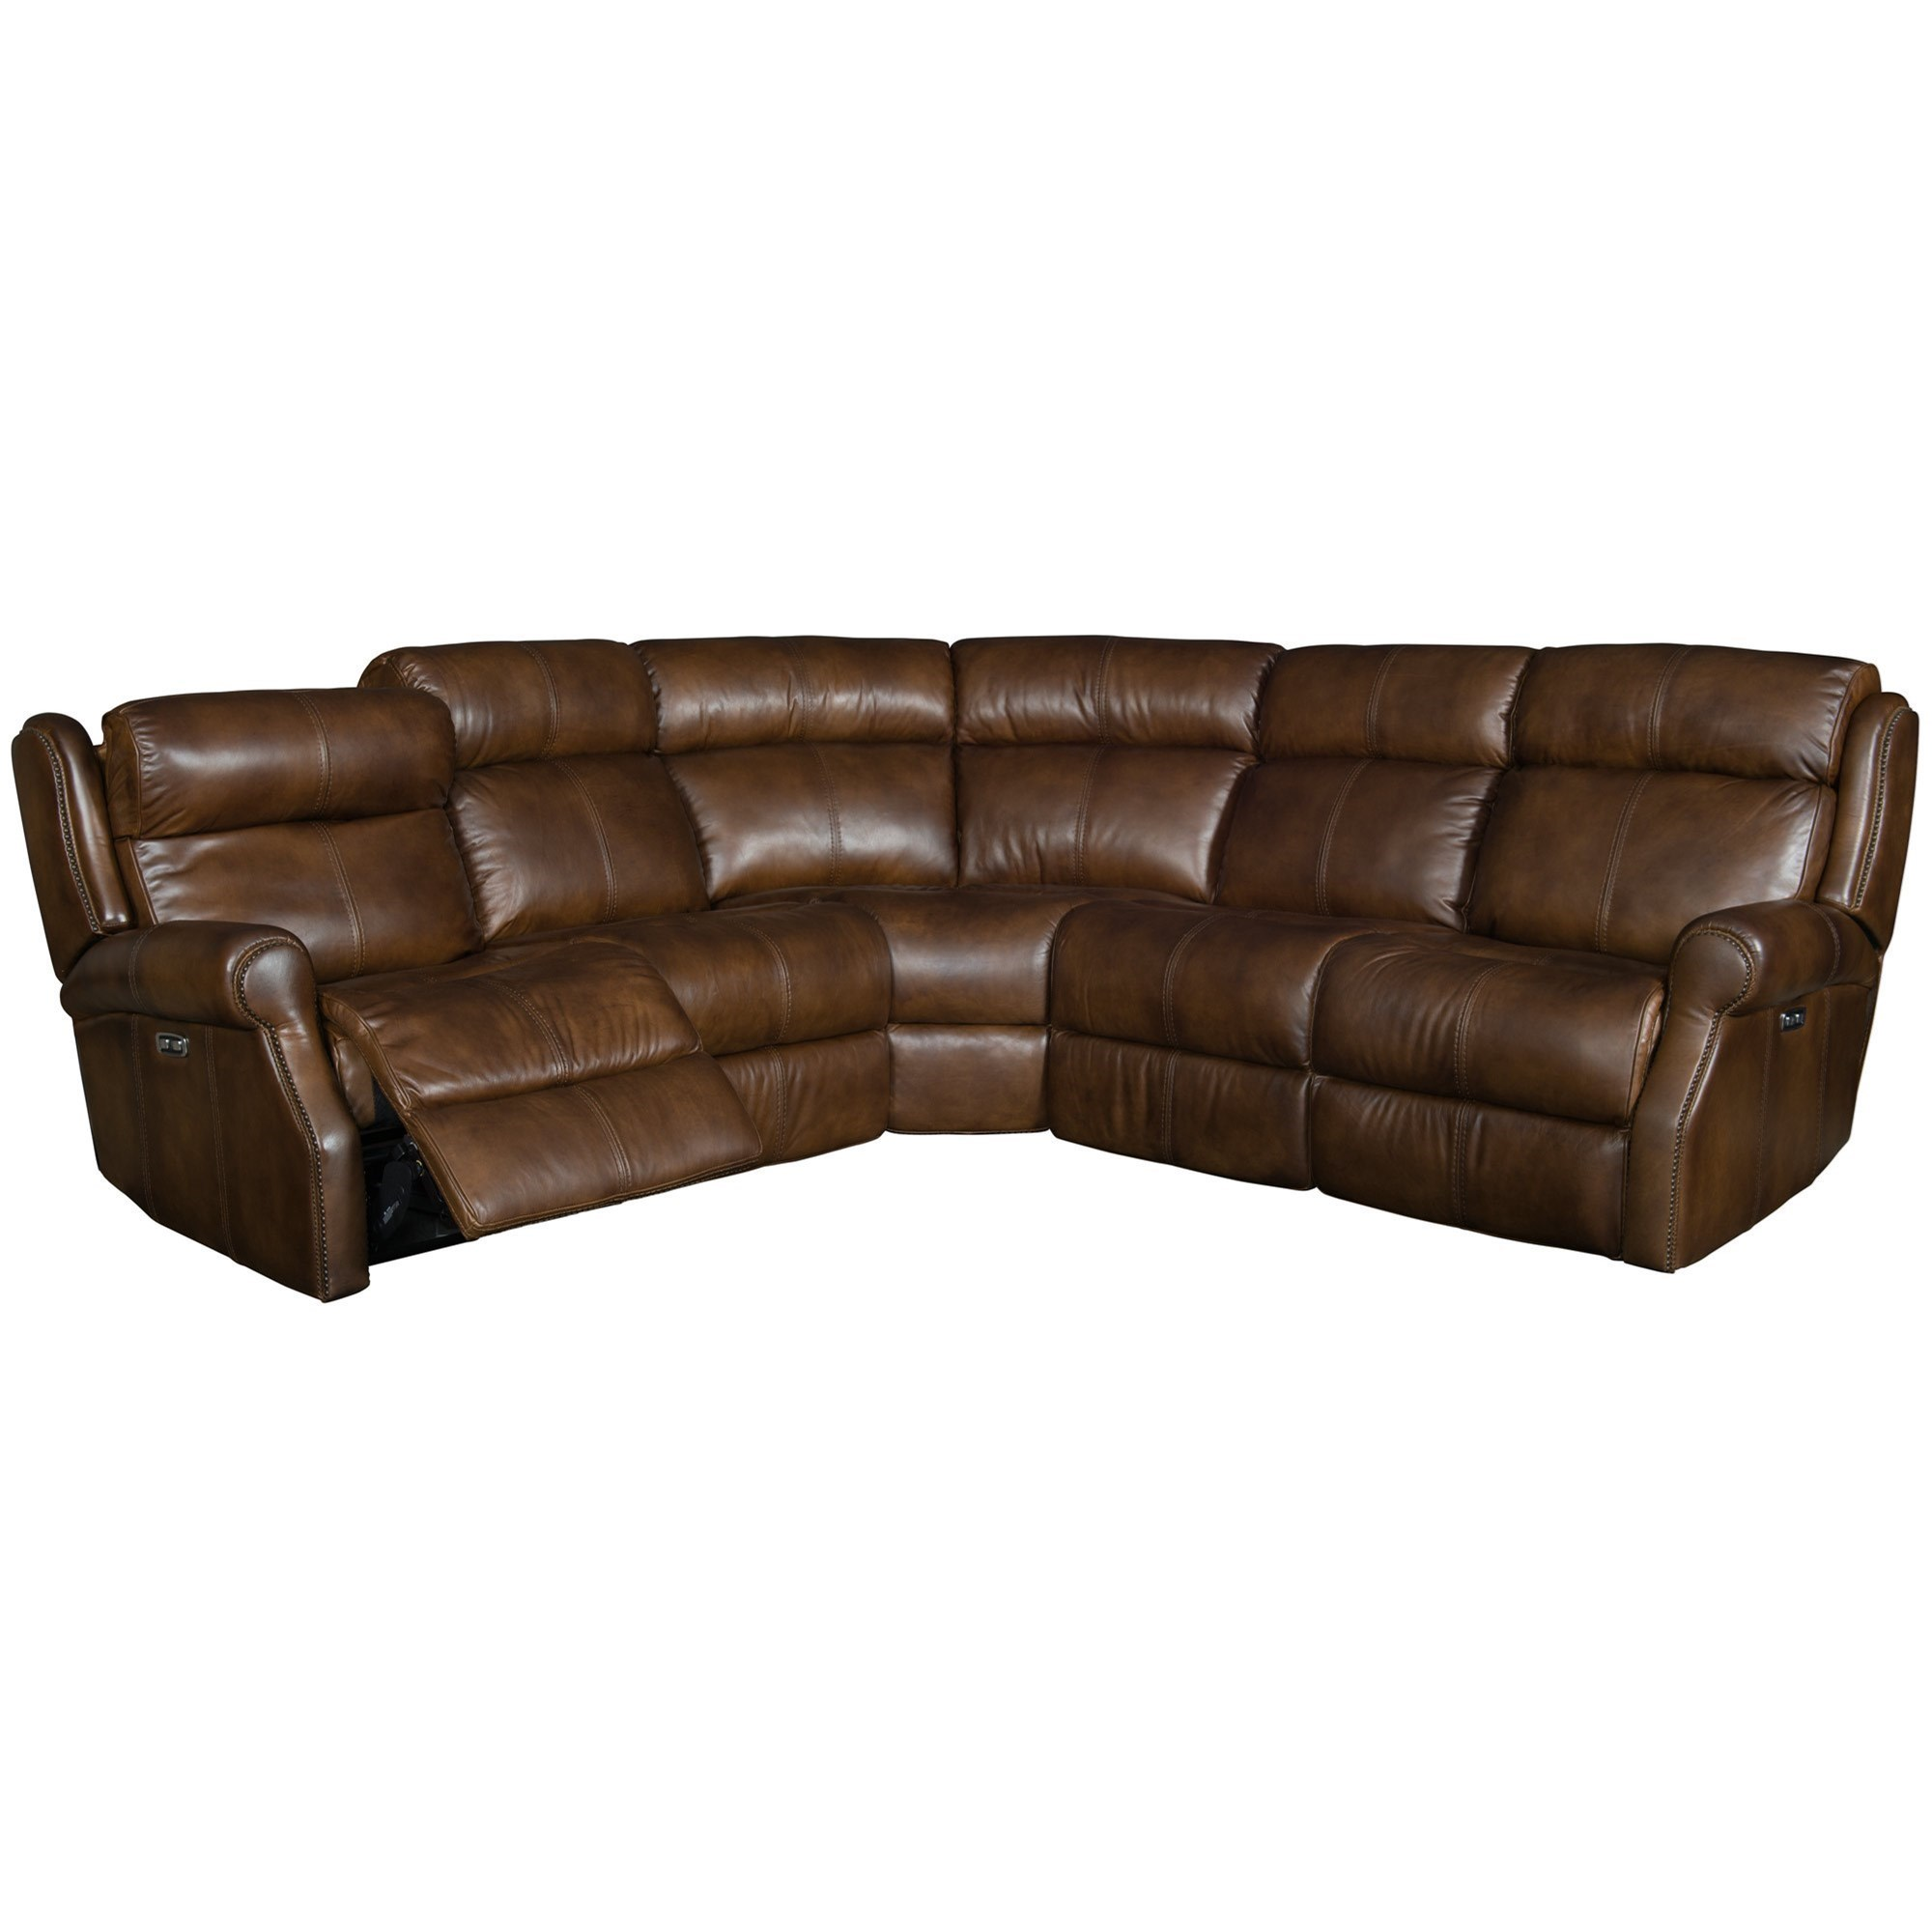 Leather Sectional Sofa Recliner Mcgwire Three Piece Power Reclining Leather Sectional Sofa With Power Tilt Headrests And Usb Charging Ports By Bernhardt At Jacksonville Furniture